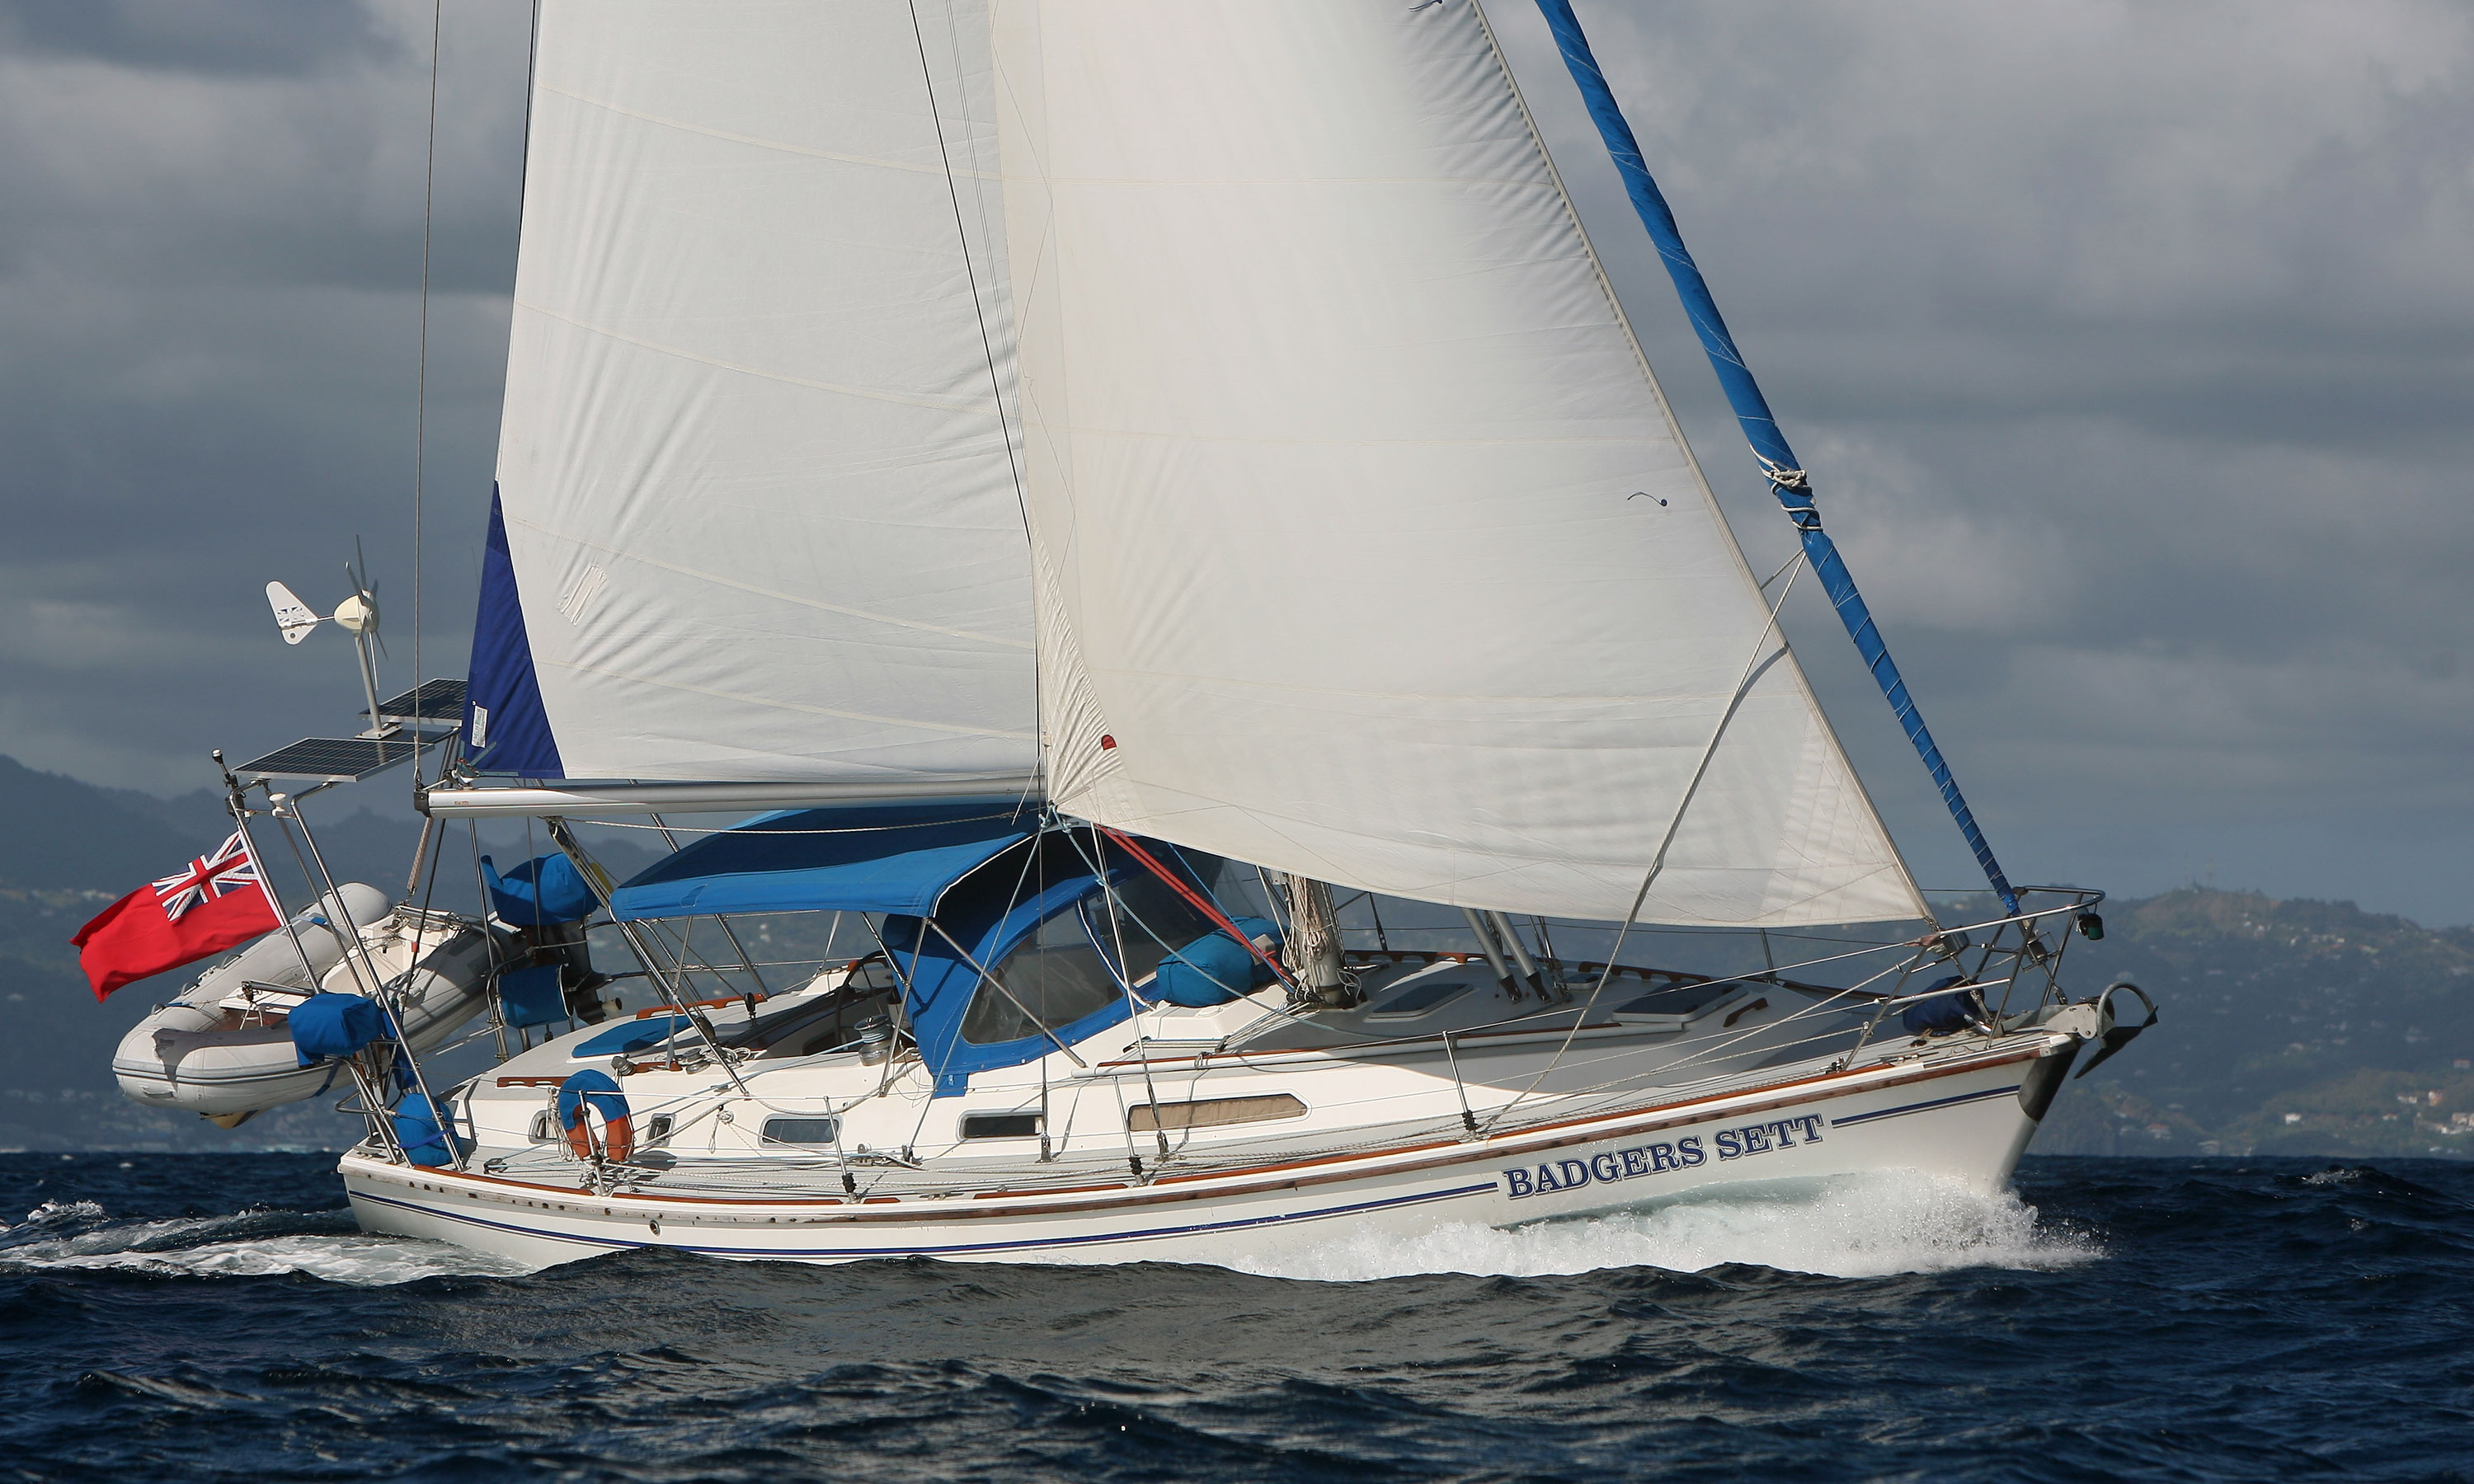 A Westerly Oceanlord 40 moderate displacement sailboat (Displacement/Length Ratio = 213)